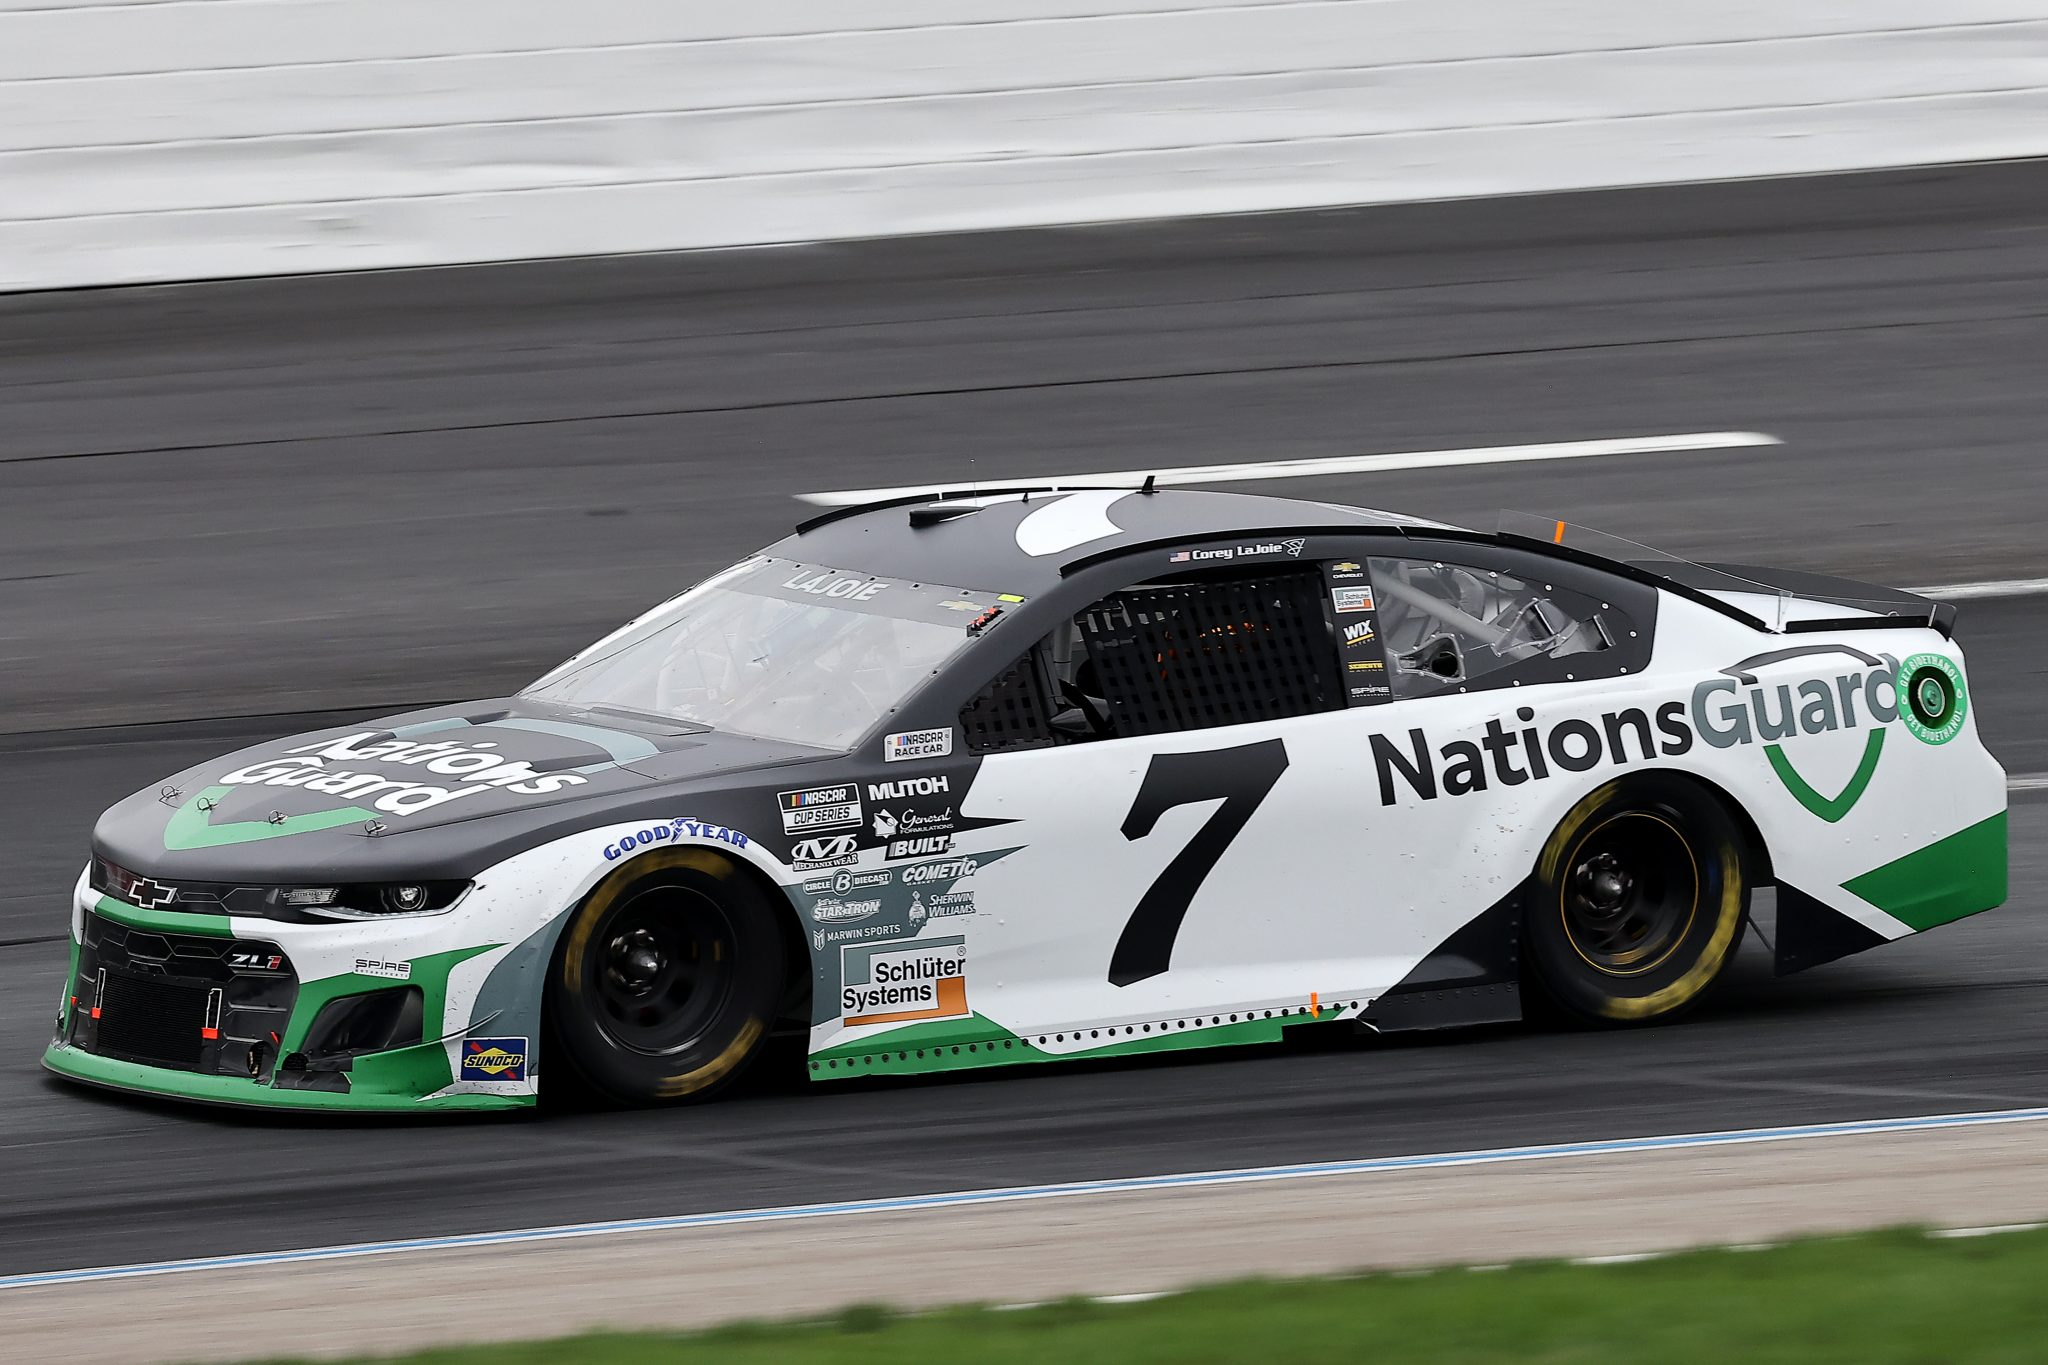 LOUDON, NEW HAMPSHIRE - JULY 18: Corey LaJoie, driver of the #7 Nations Guard Chevrolet, drives during the NASCAR Cup Series Foxwoods Resort Casino 301 at New Hampshire Motor Speedway on July 18, 2021 in Loudon, New Hampshire. (Photo by James Gilbert/Getty Images)   Getty Images